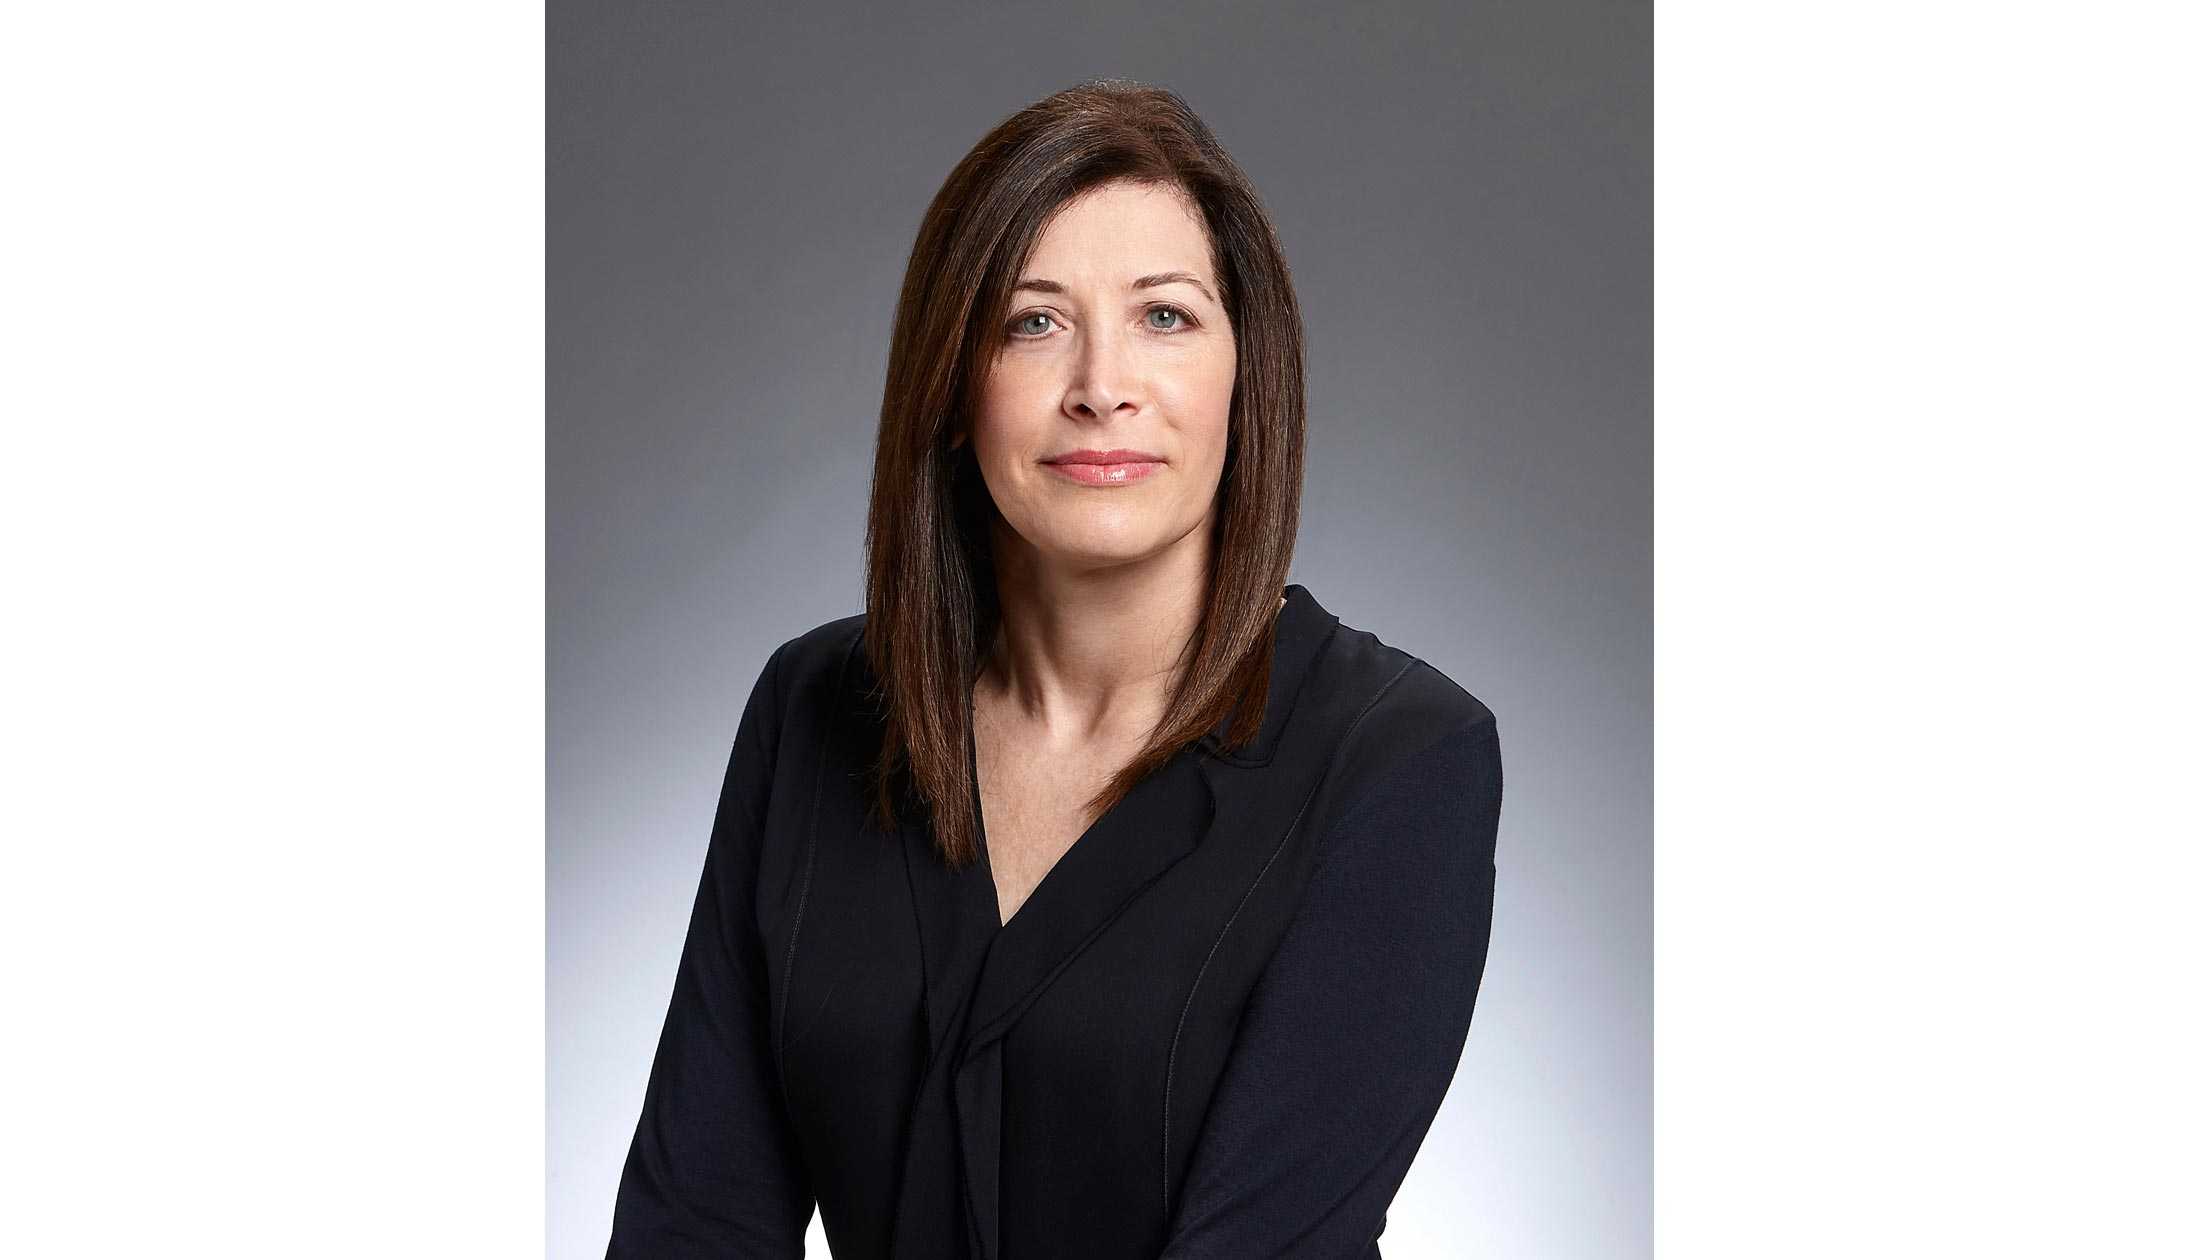 Female Executive Portrait